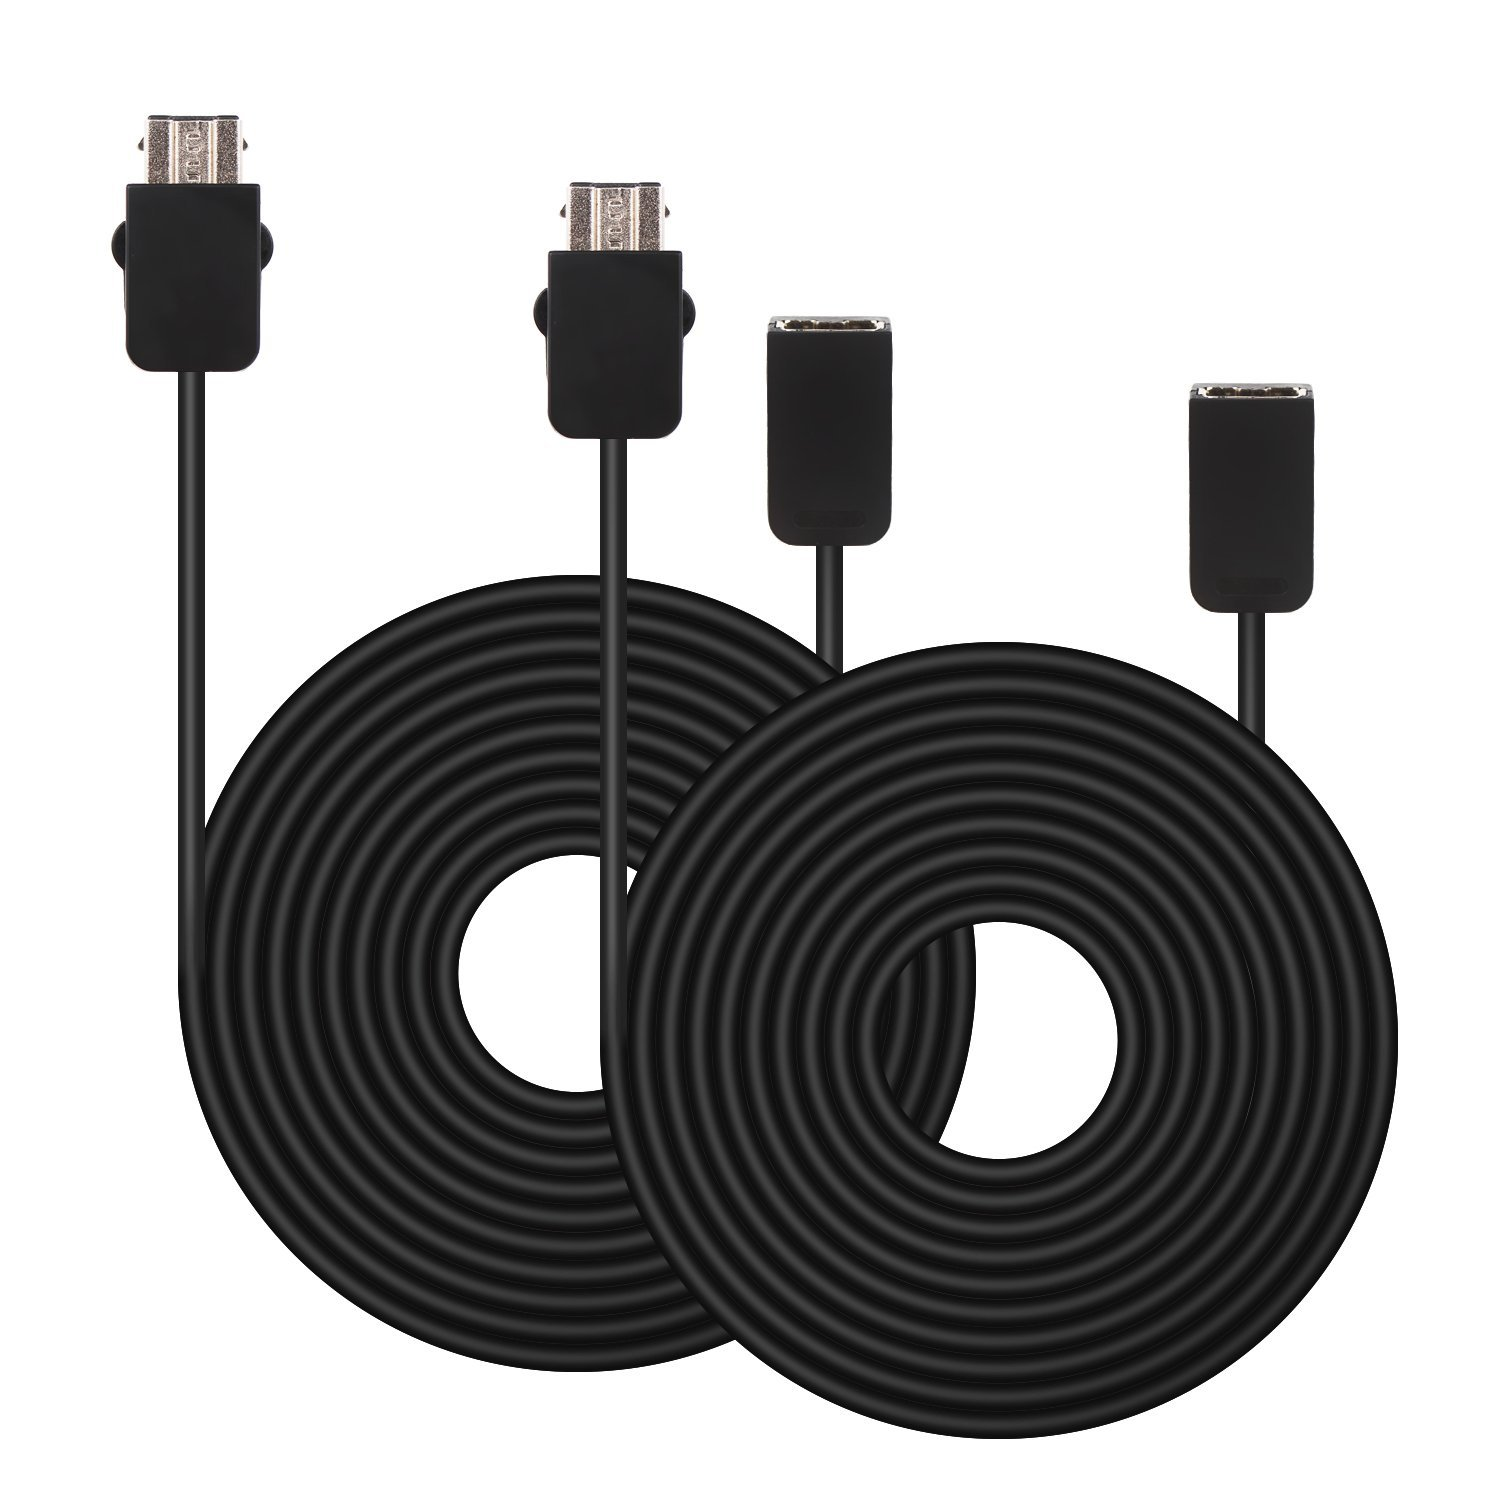 2 Pack Nintendo NES/SNES Classic Edition System 6-ft. Extension Cable Cord